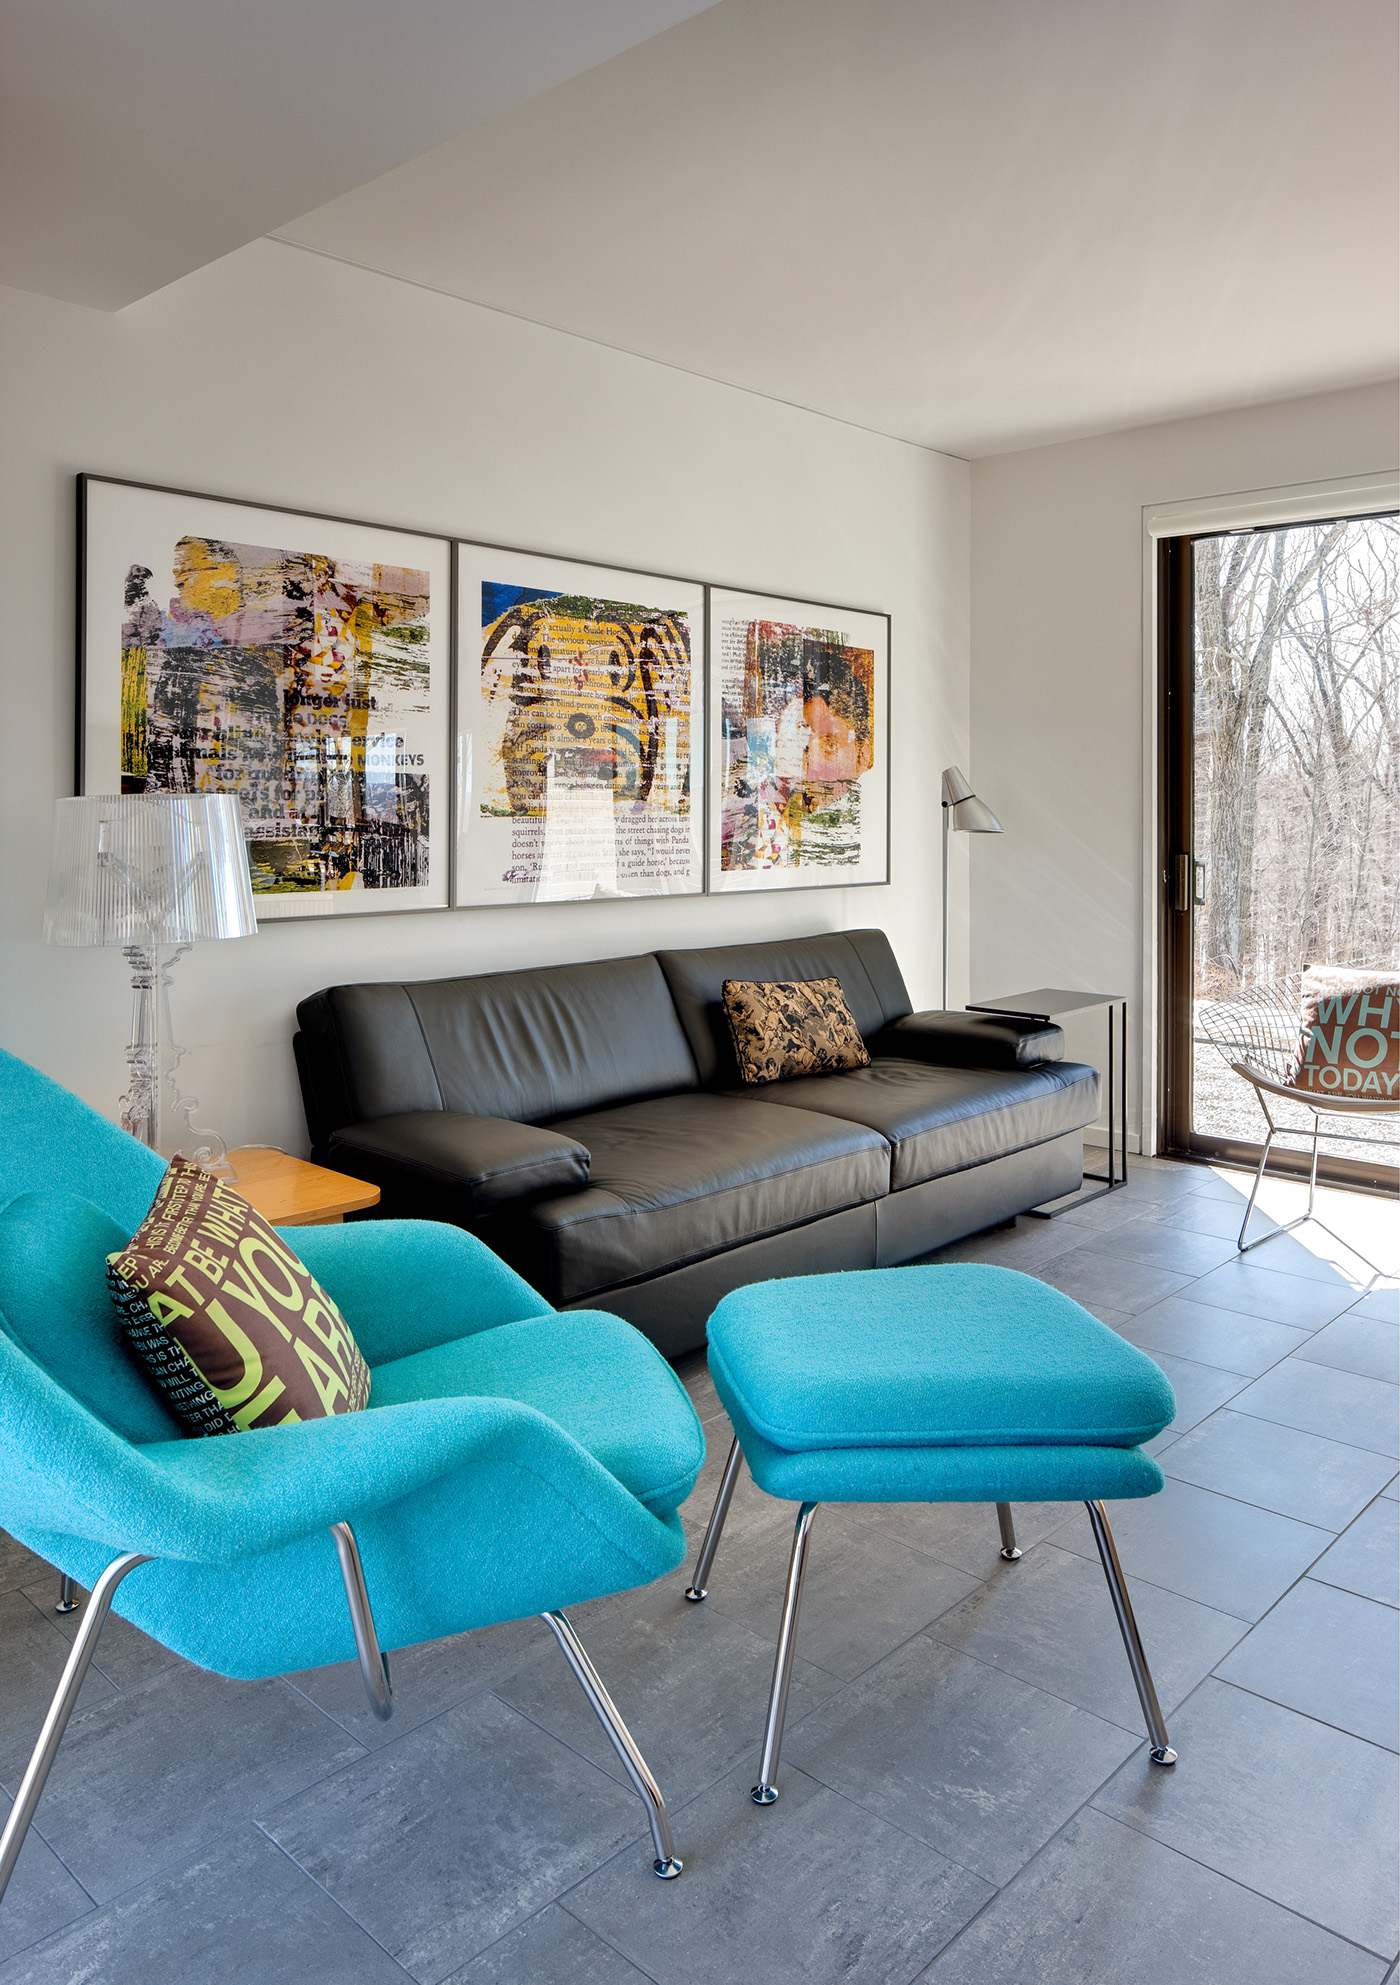 Be Dazzled By This Mid-Century Modern Residence! 4 mid-century modern Be Dazzled By This Mid-Century Modern Residence! Be Dazzled By This Mid Century Modern Residence 4